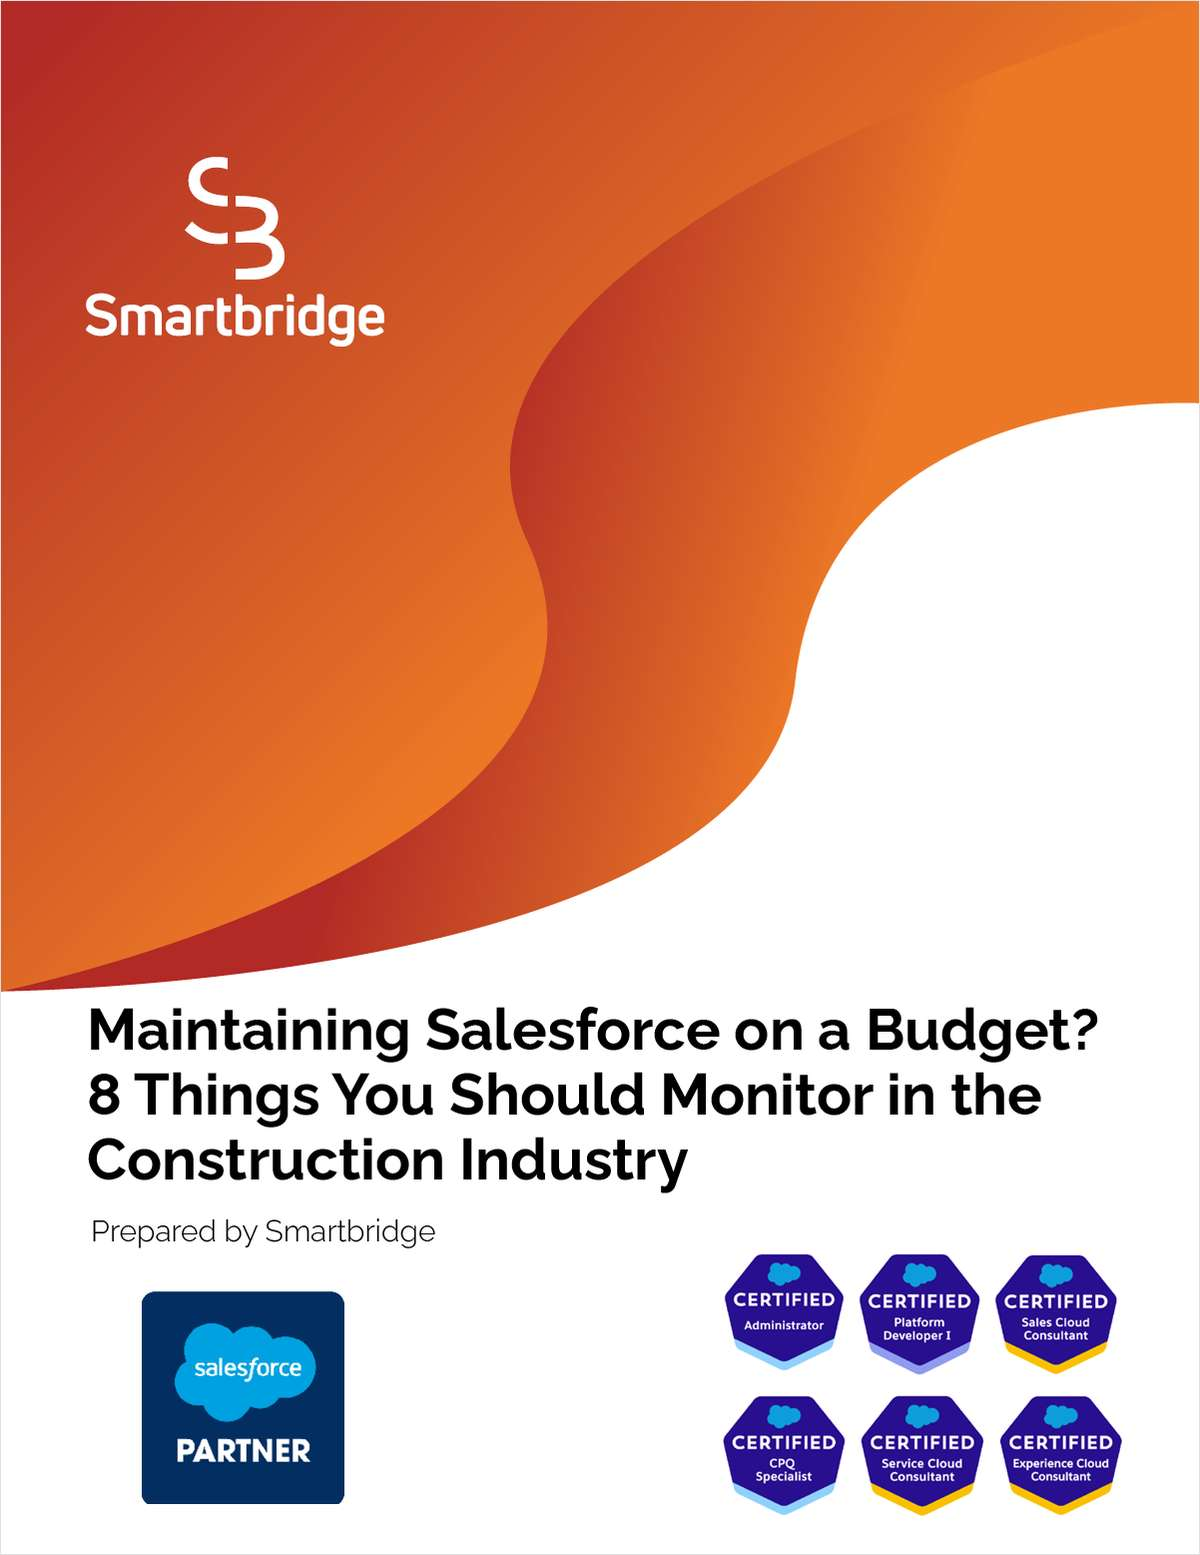 Maintaining Salesforce on a Budget E-Book for Construction